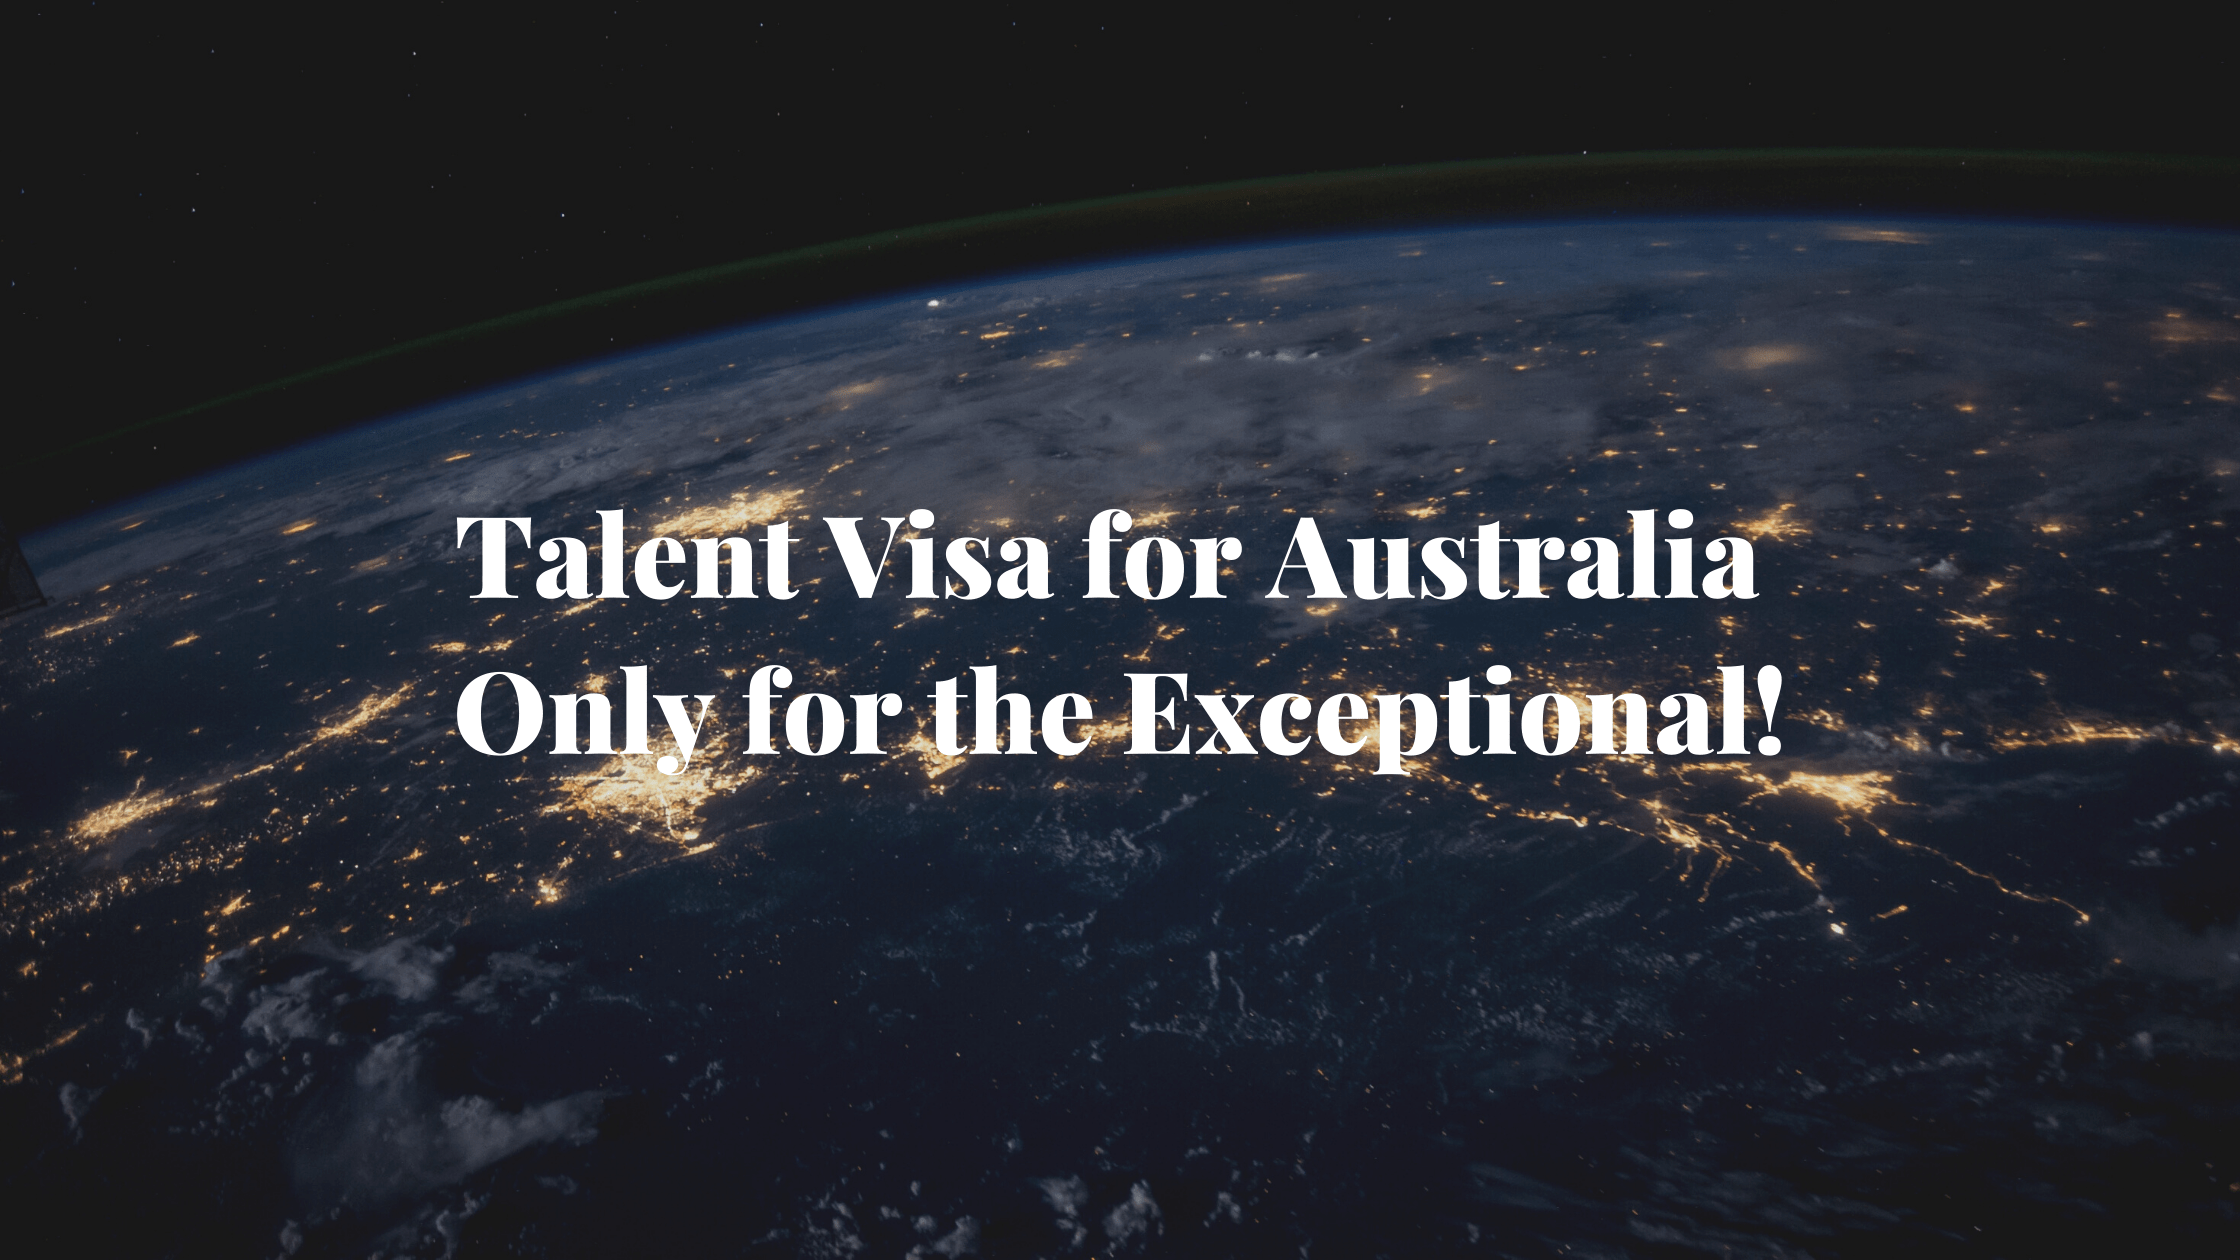 Talent Visa for Australia - Only for the Exceptional! 2